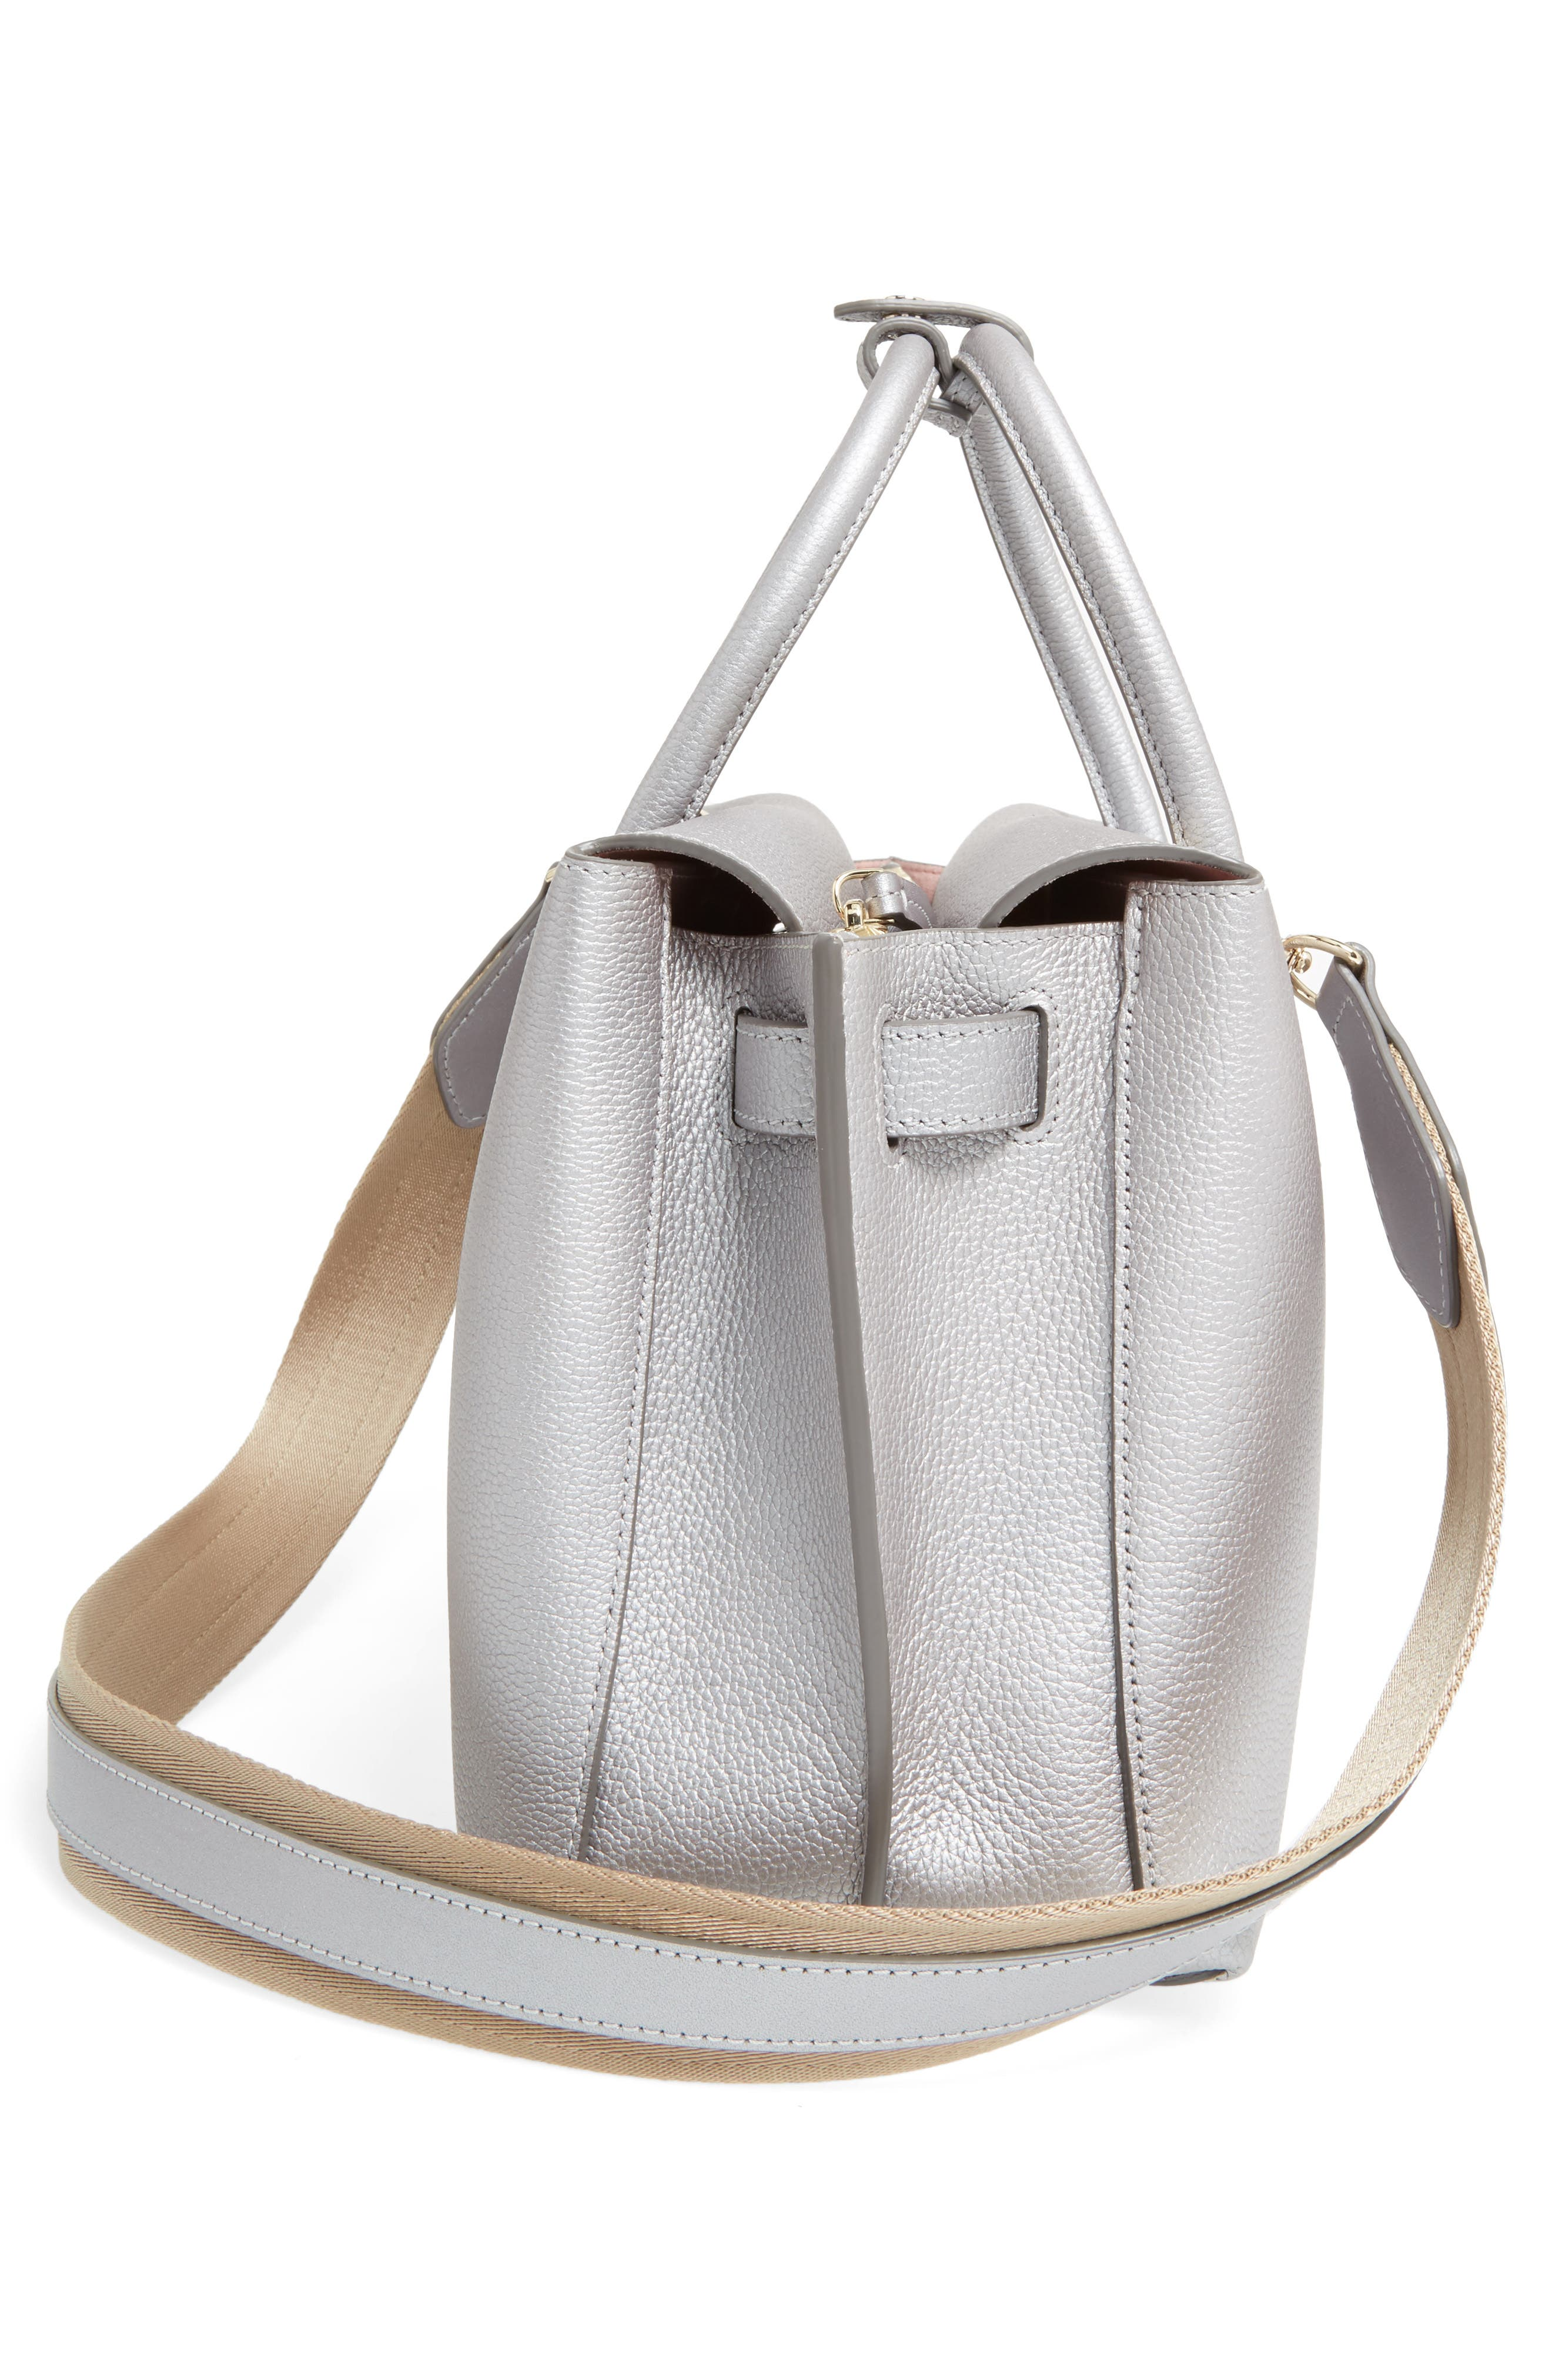 Medium Milla Leather Tote,                             Alternate thumbnail 5, color,                             045